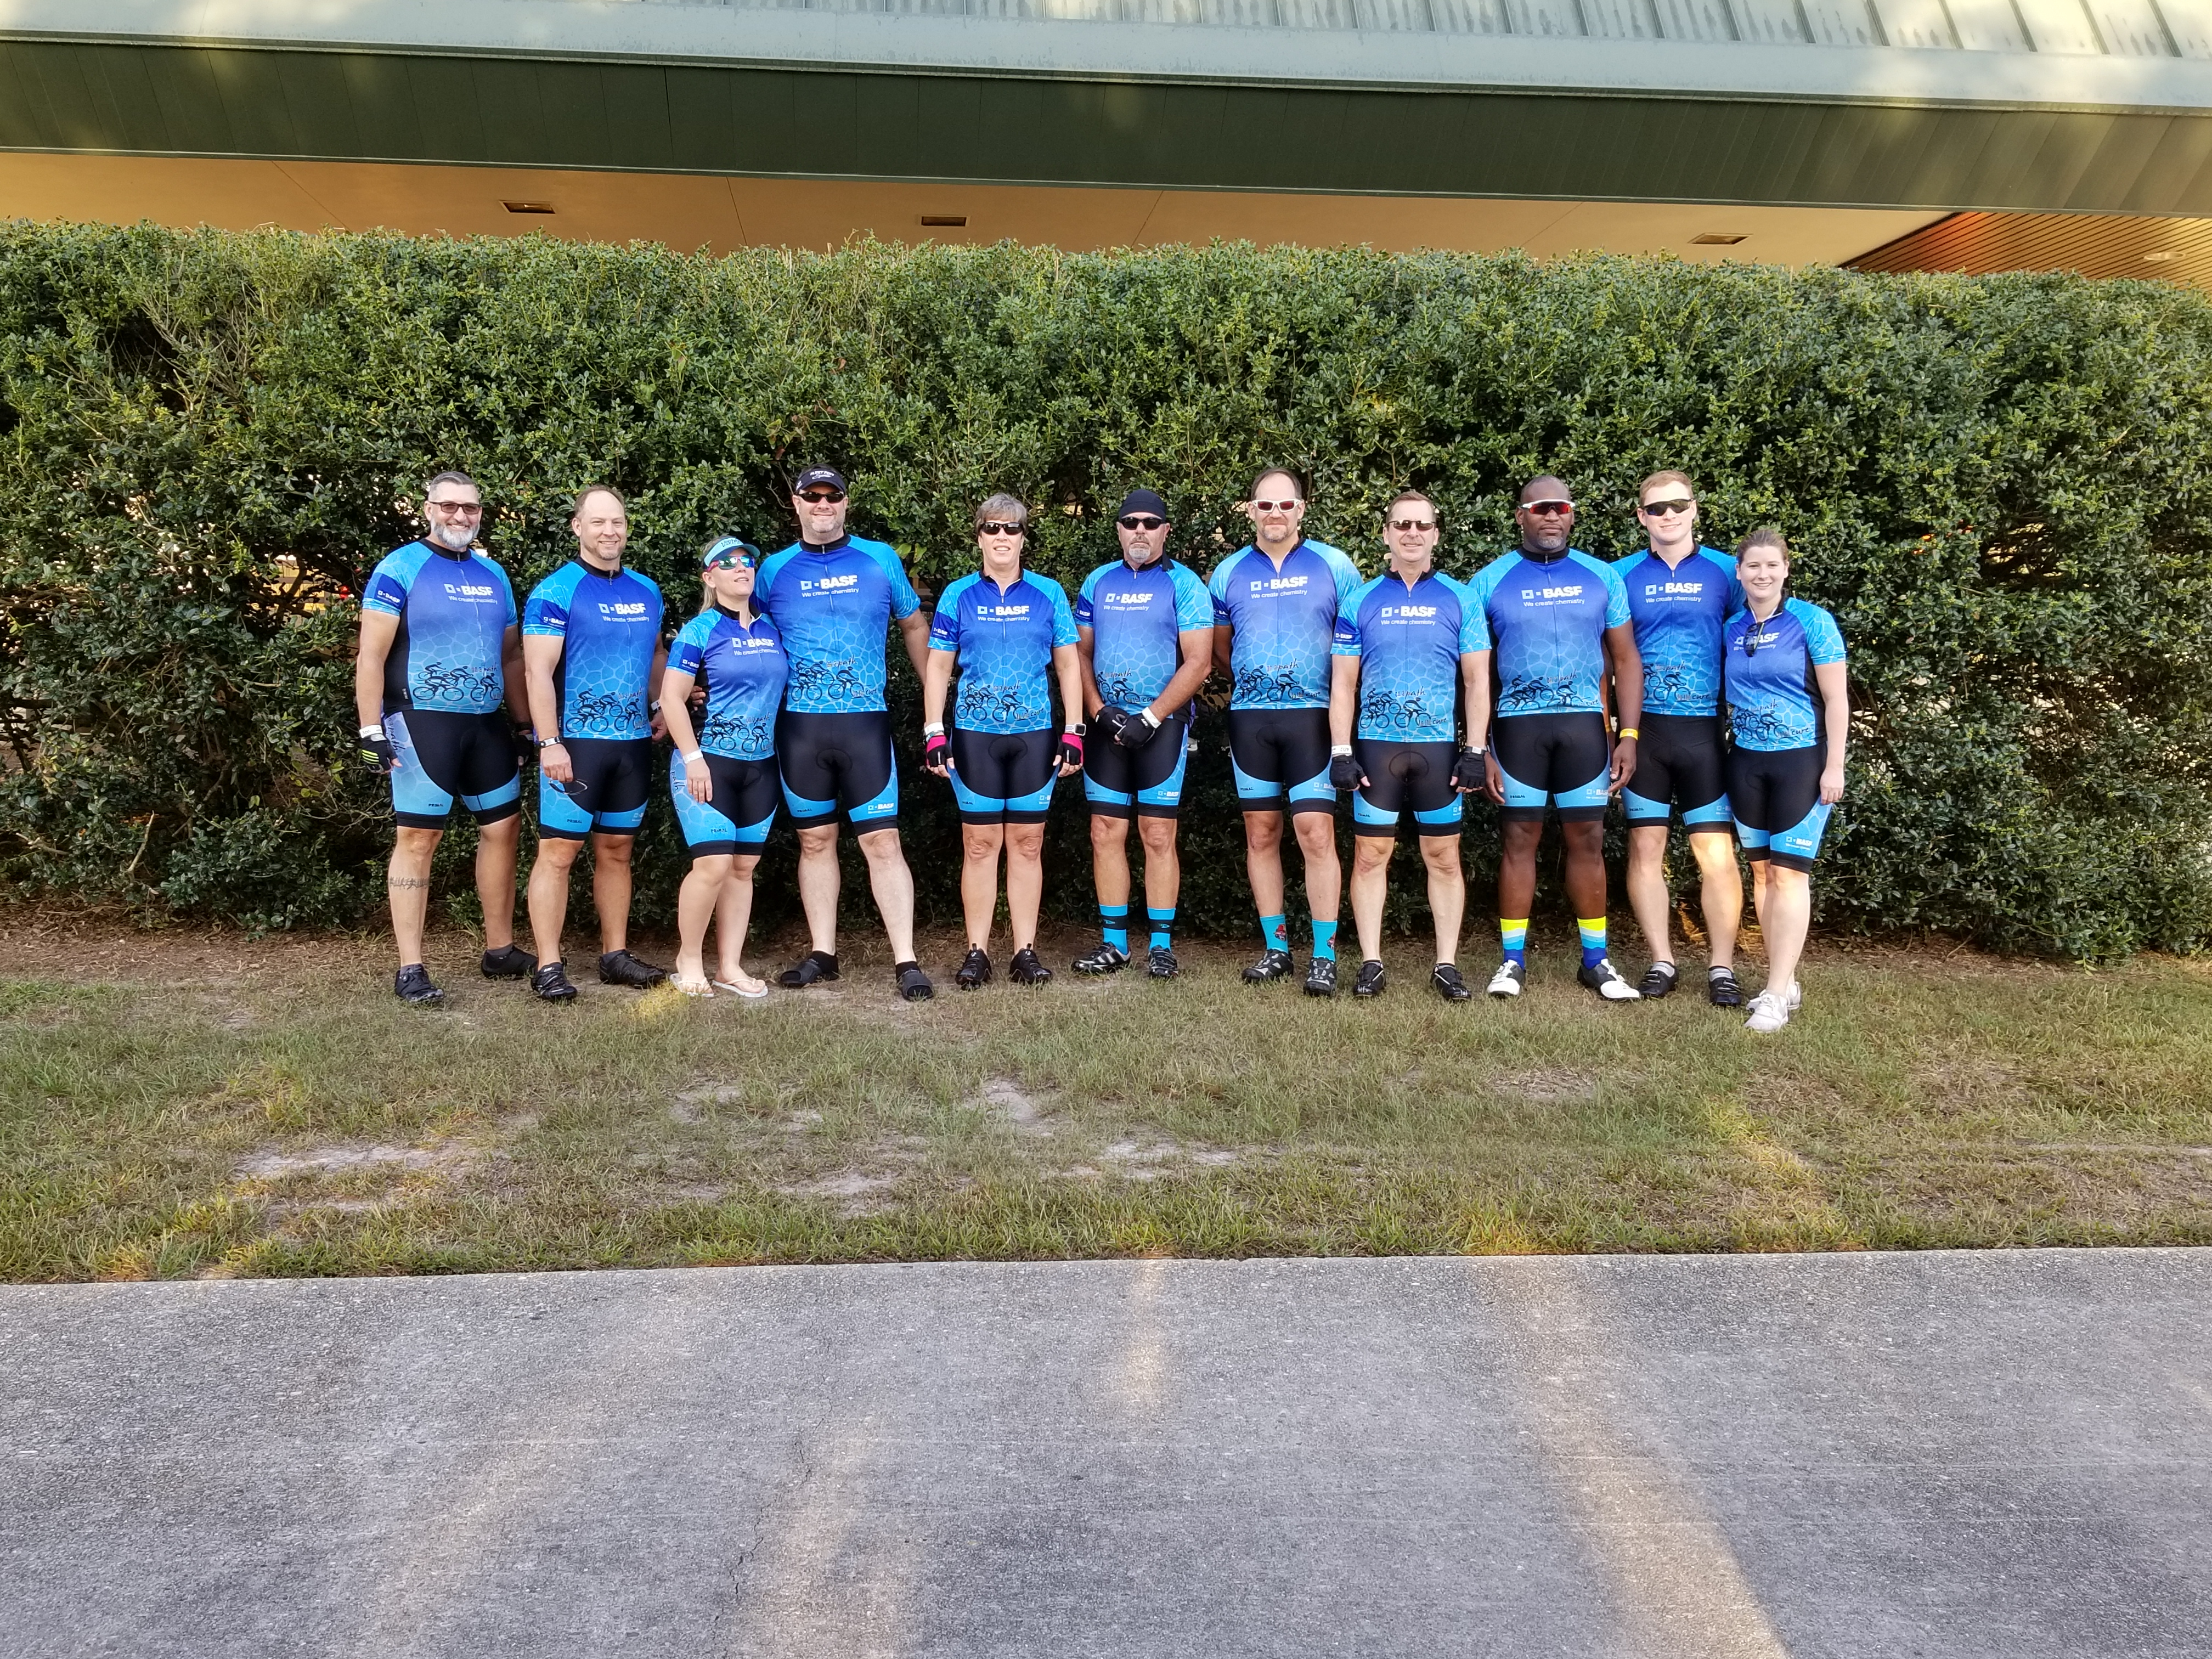 Group shot of BASF Bike MS Team Dat's How We Roll, 2018